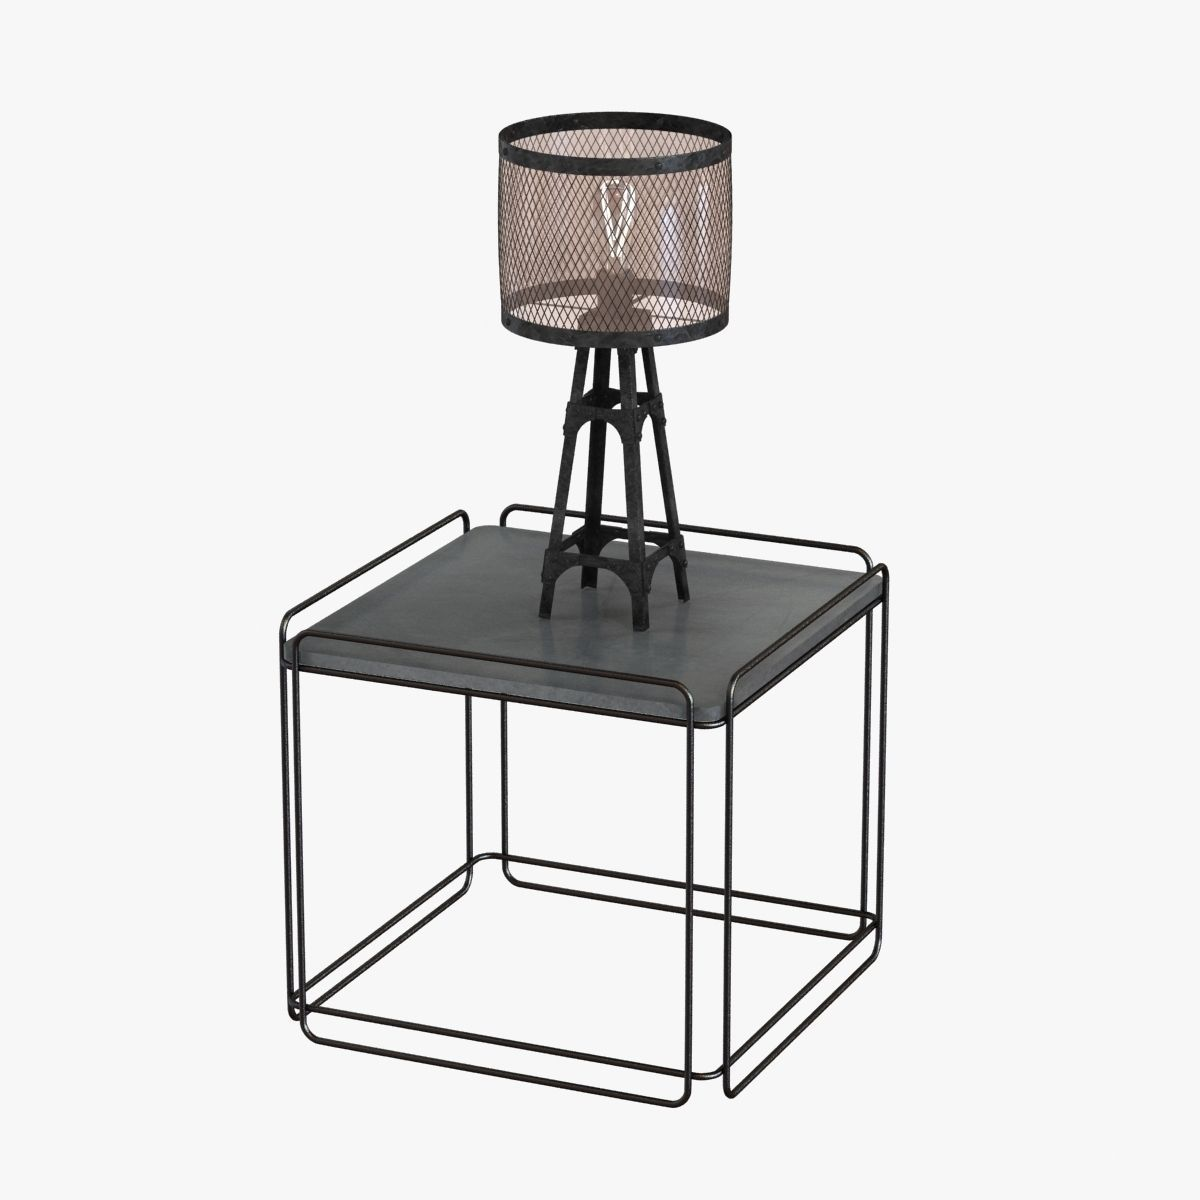 Industrial Table Lamp On Table 3d Model Max Obj 3ds Fbx Mtl 1 ...